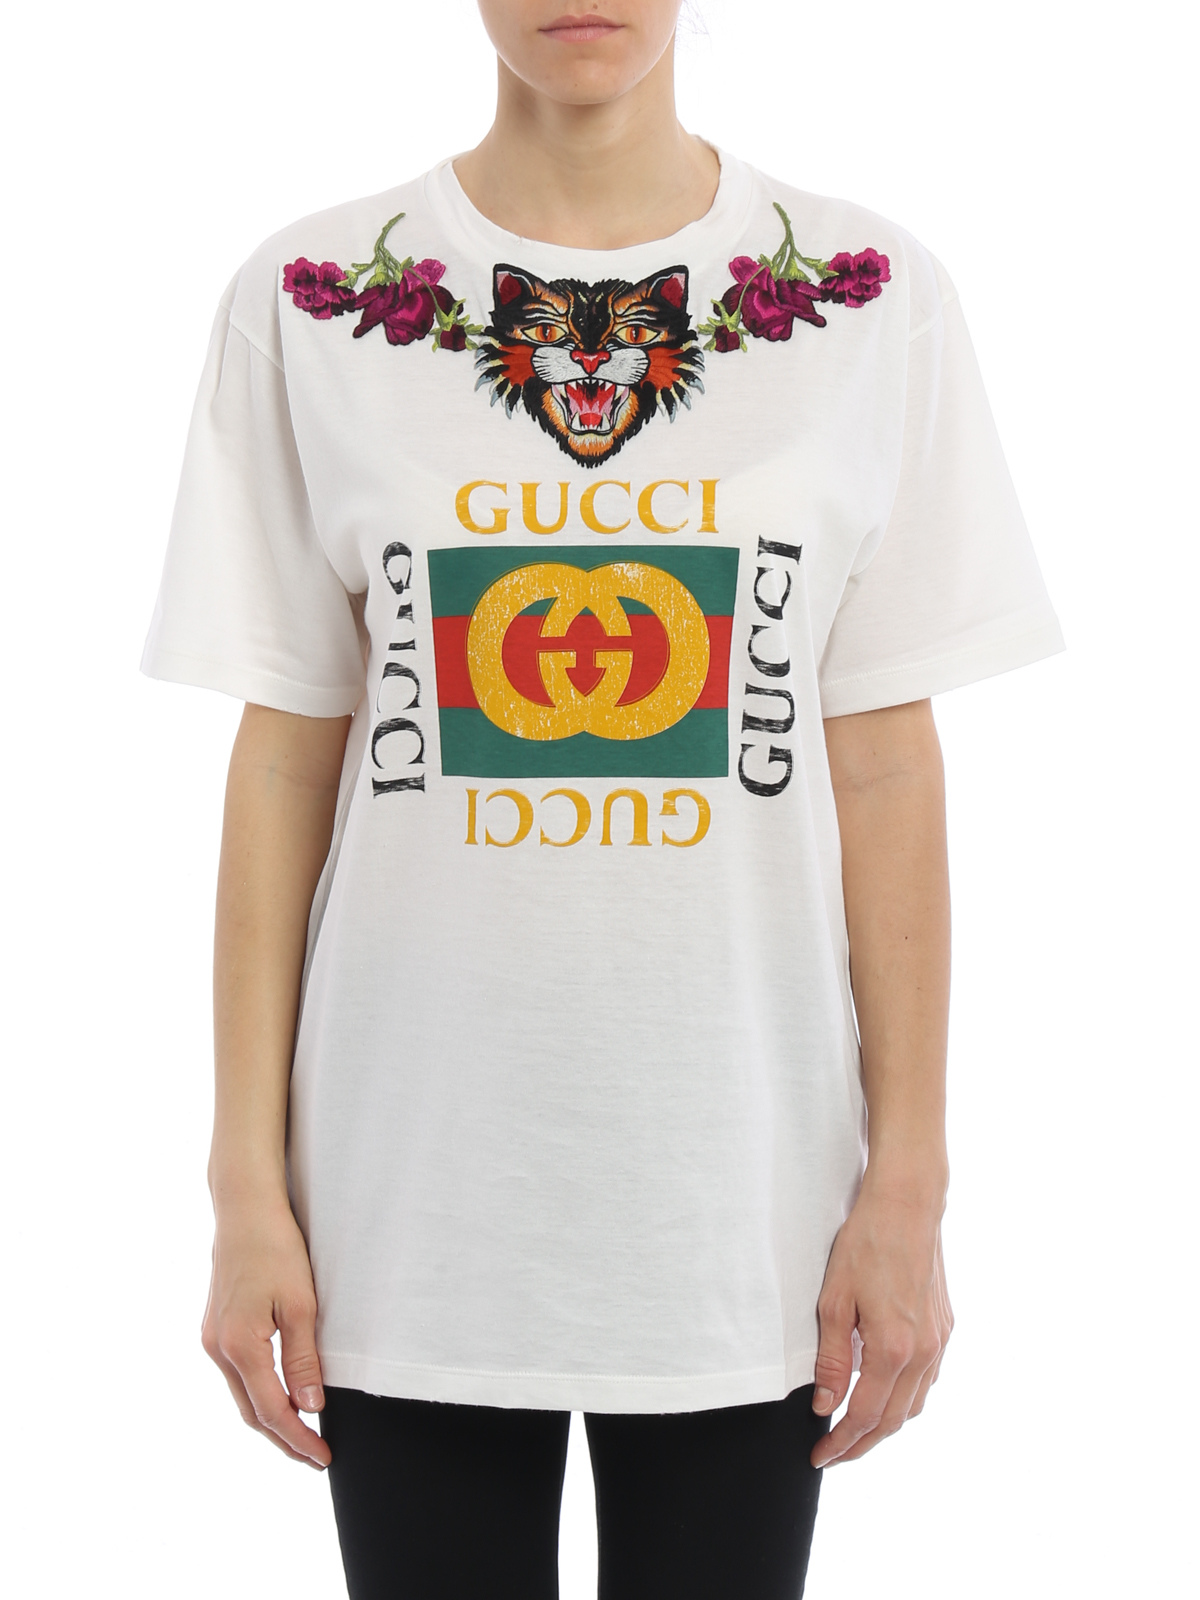 acf44c9d7 Gucci - Angry Cat embroidery T-shirt - t-shirts - 457094X5S719234